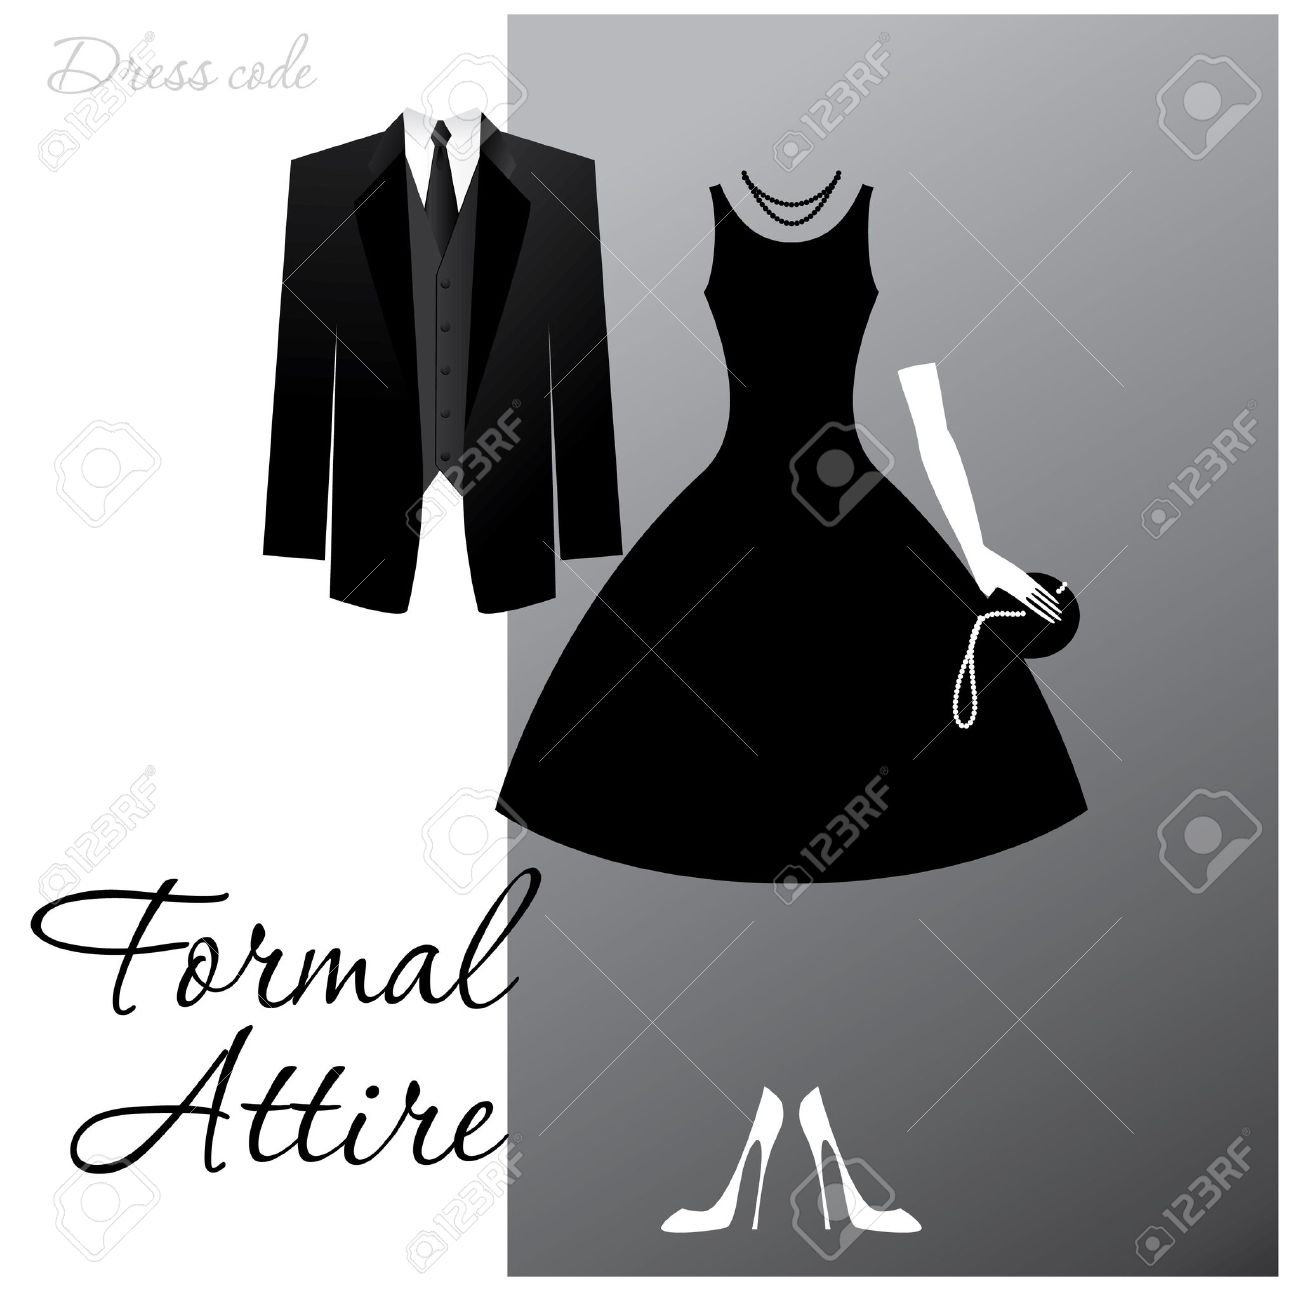 Dress Code - Formal Attire. The Man - A Black Tuxedo, A Dark ...